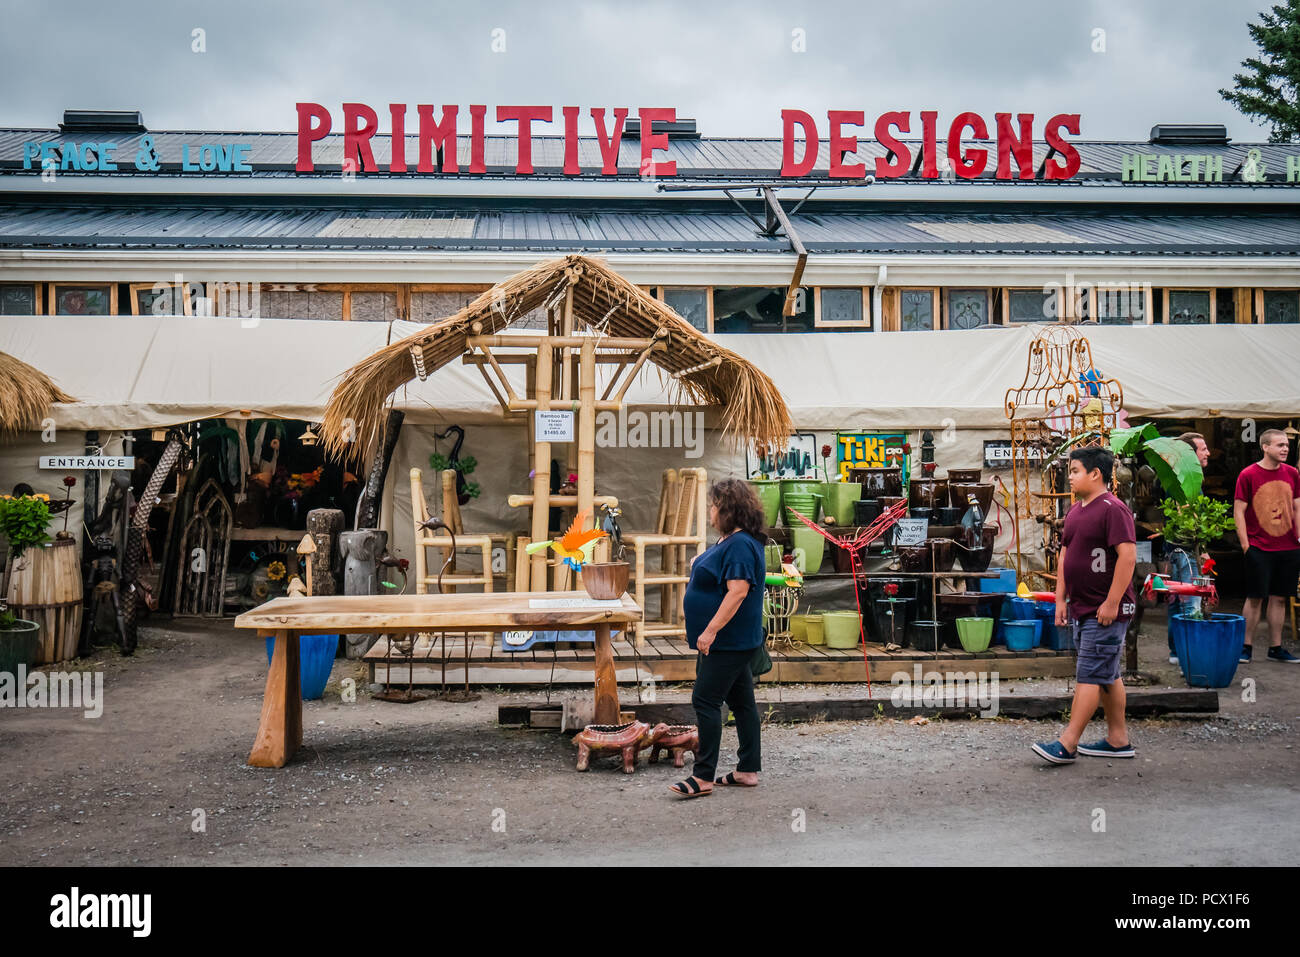 primitive design is an unique art and home décor store in hope port canada - Stock Image